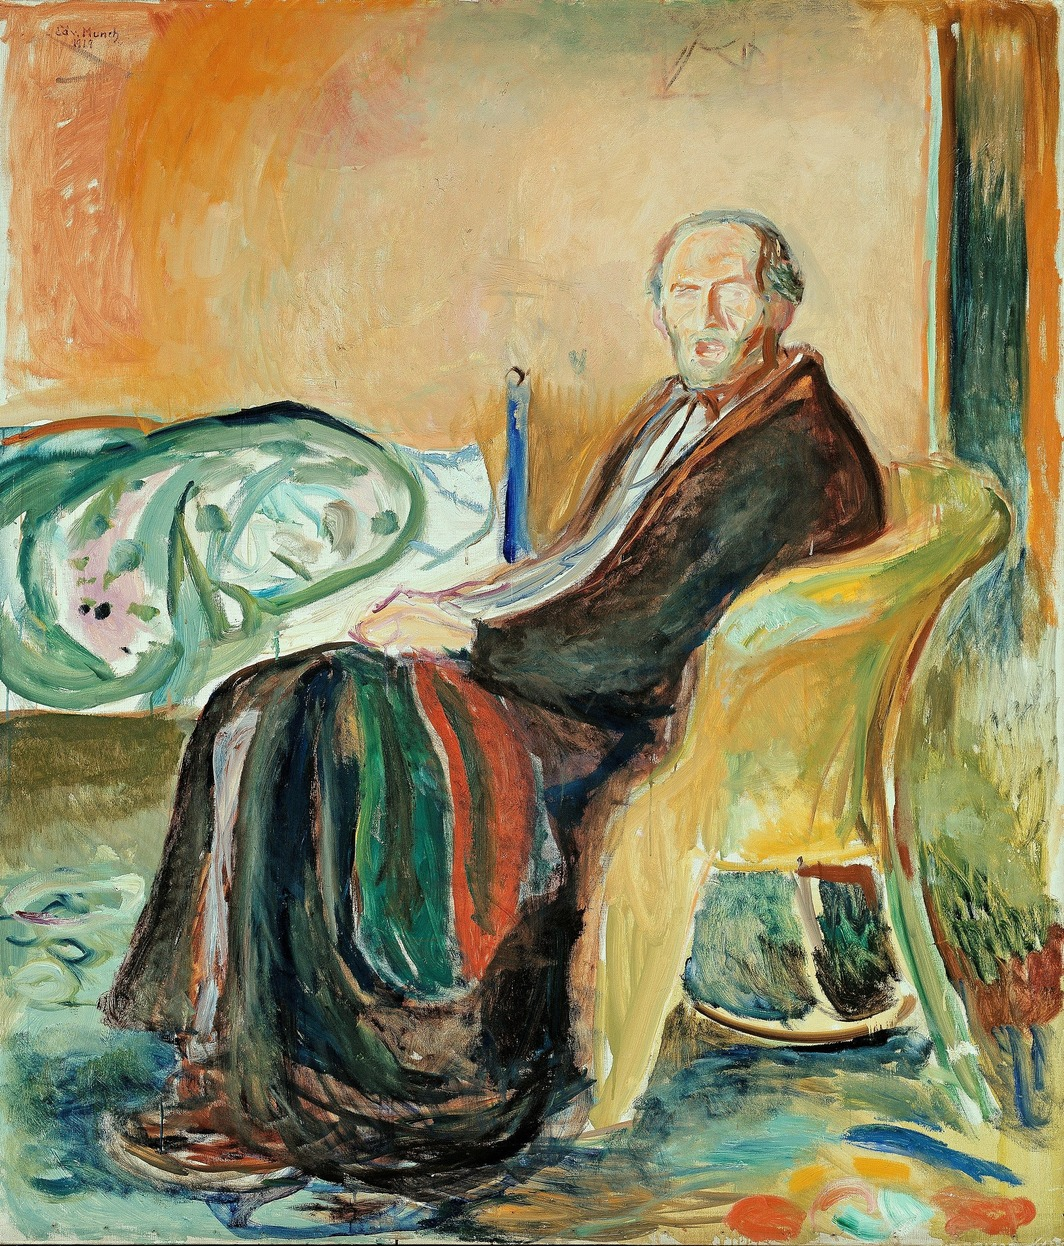 Edvard Munch, Self-Portrait with the Spanish Flu, 1919, oil on canvas, 59 x 51 5/8''. National Gallery, Oslo.